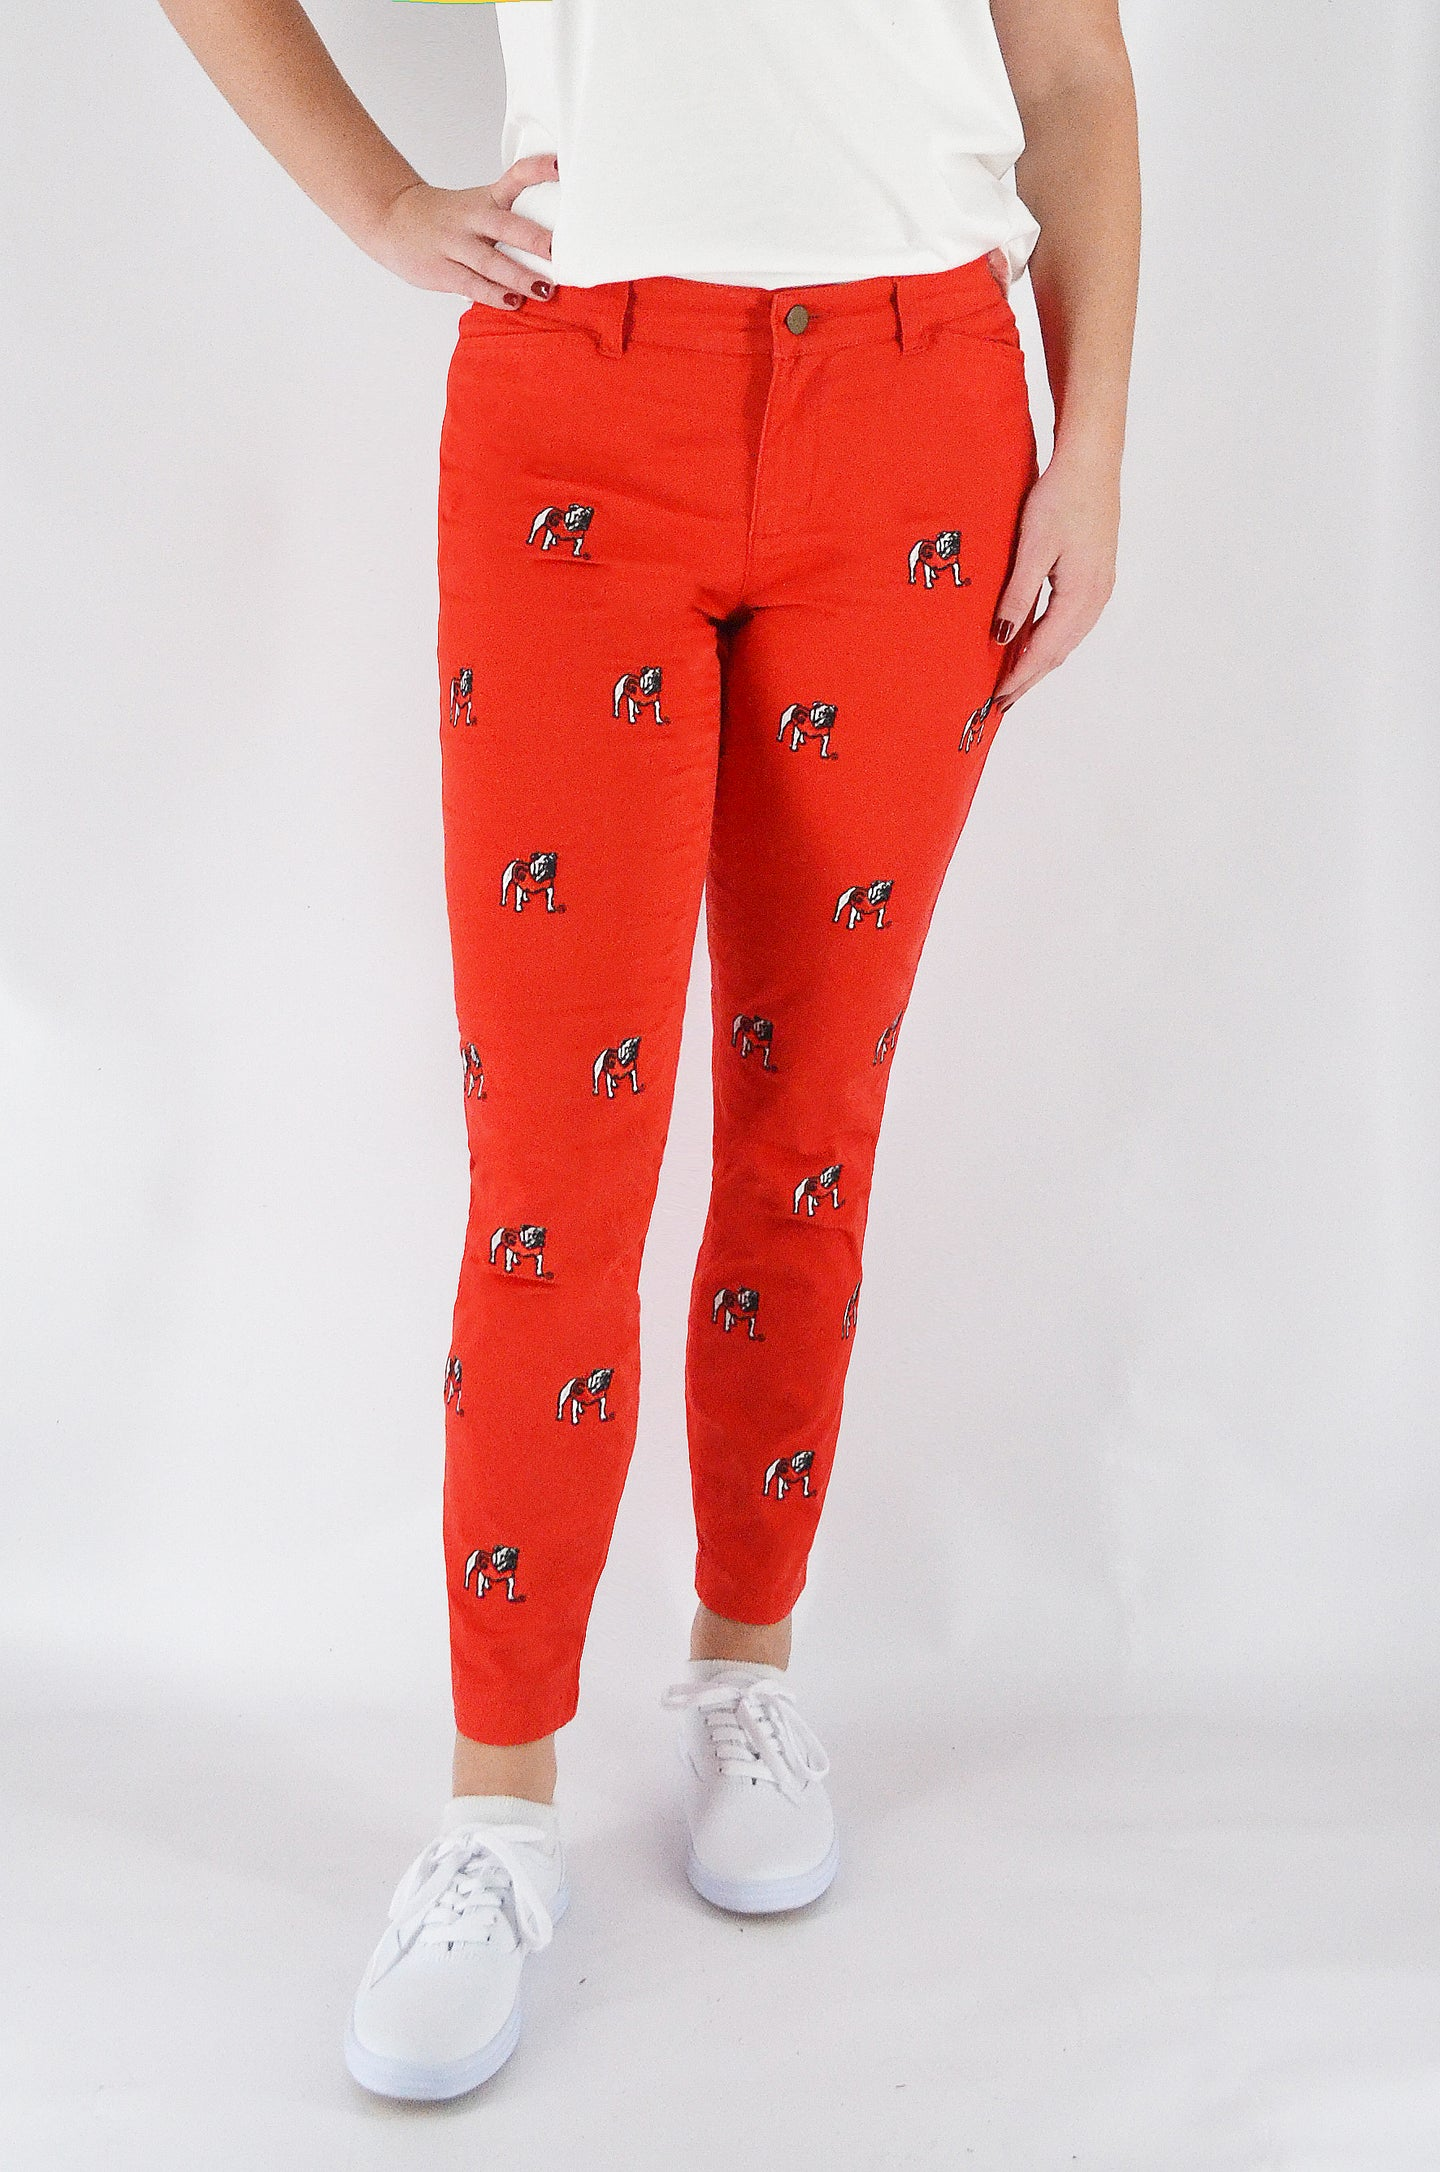 Georgia Women's Red Pant